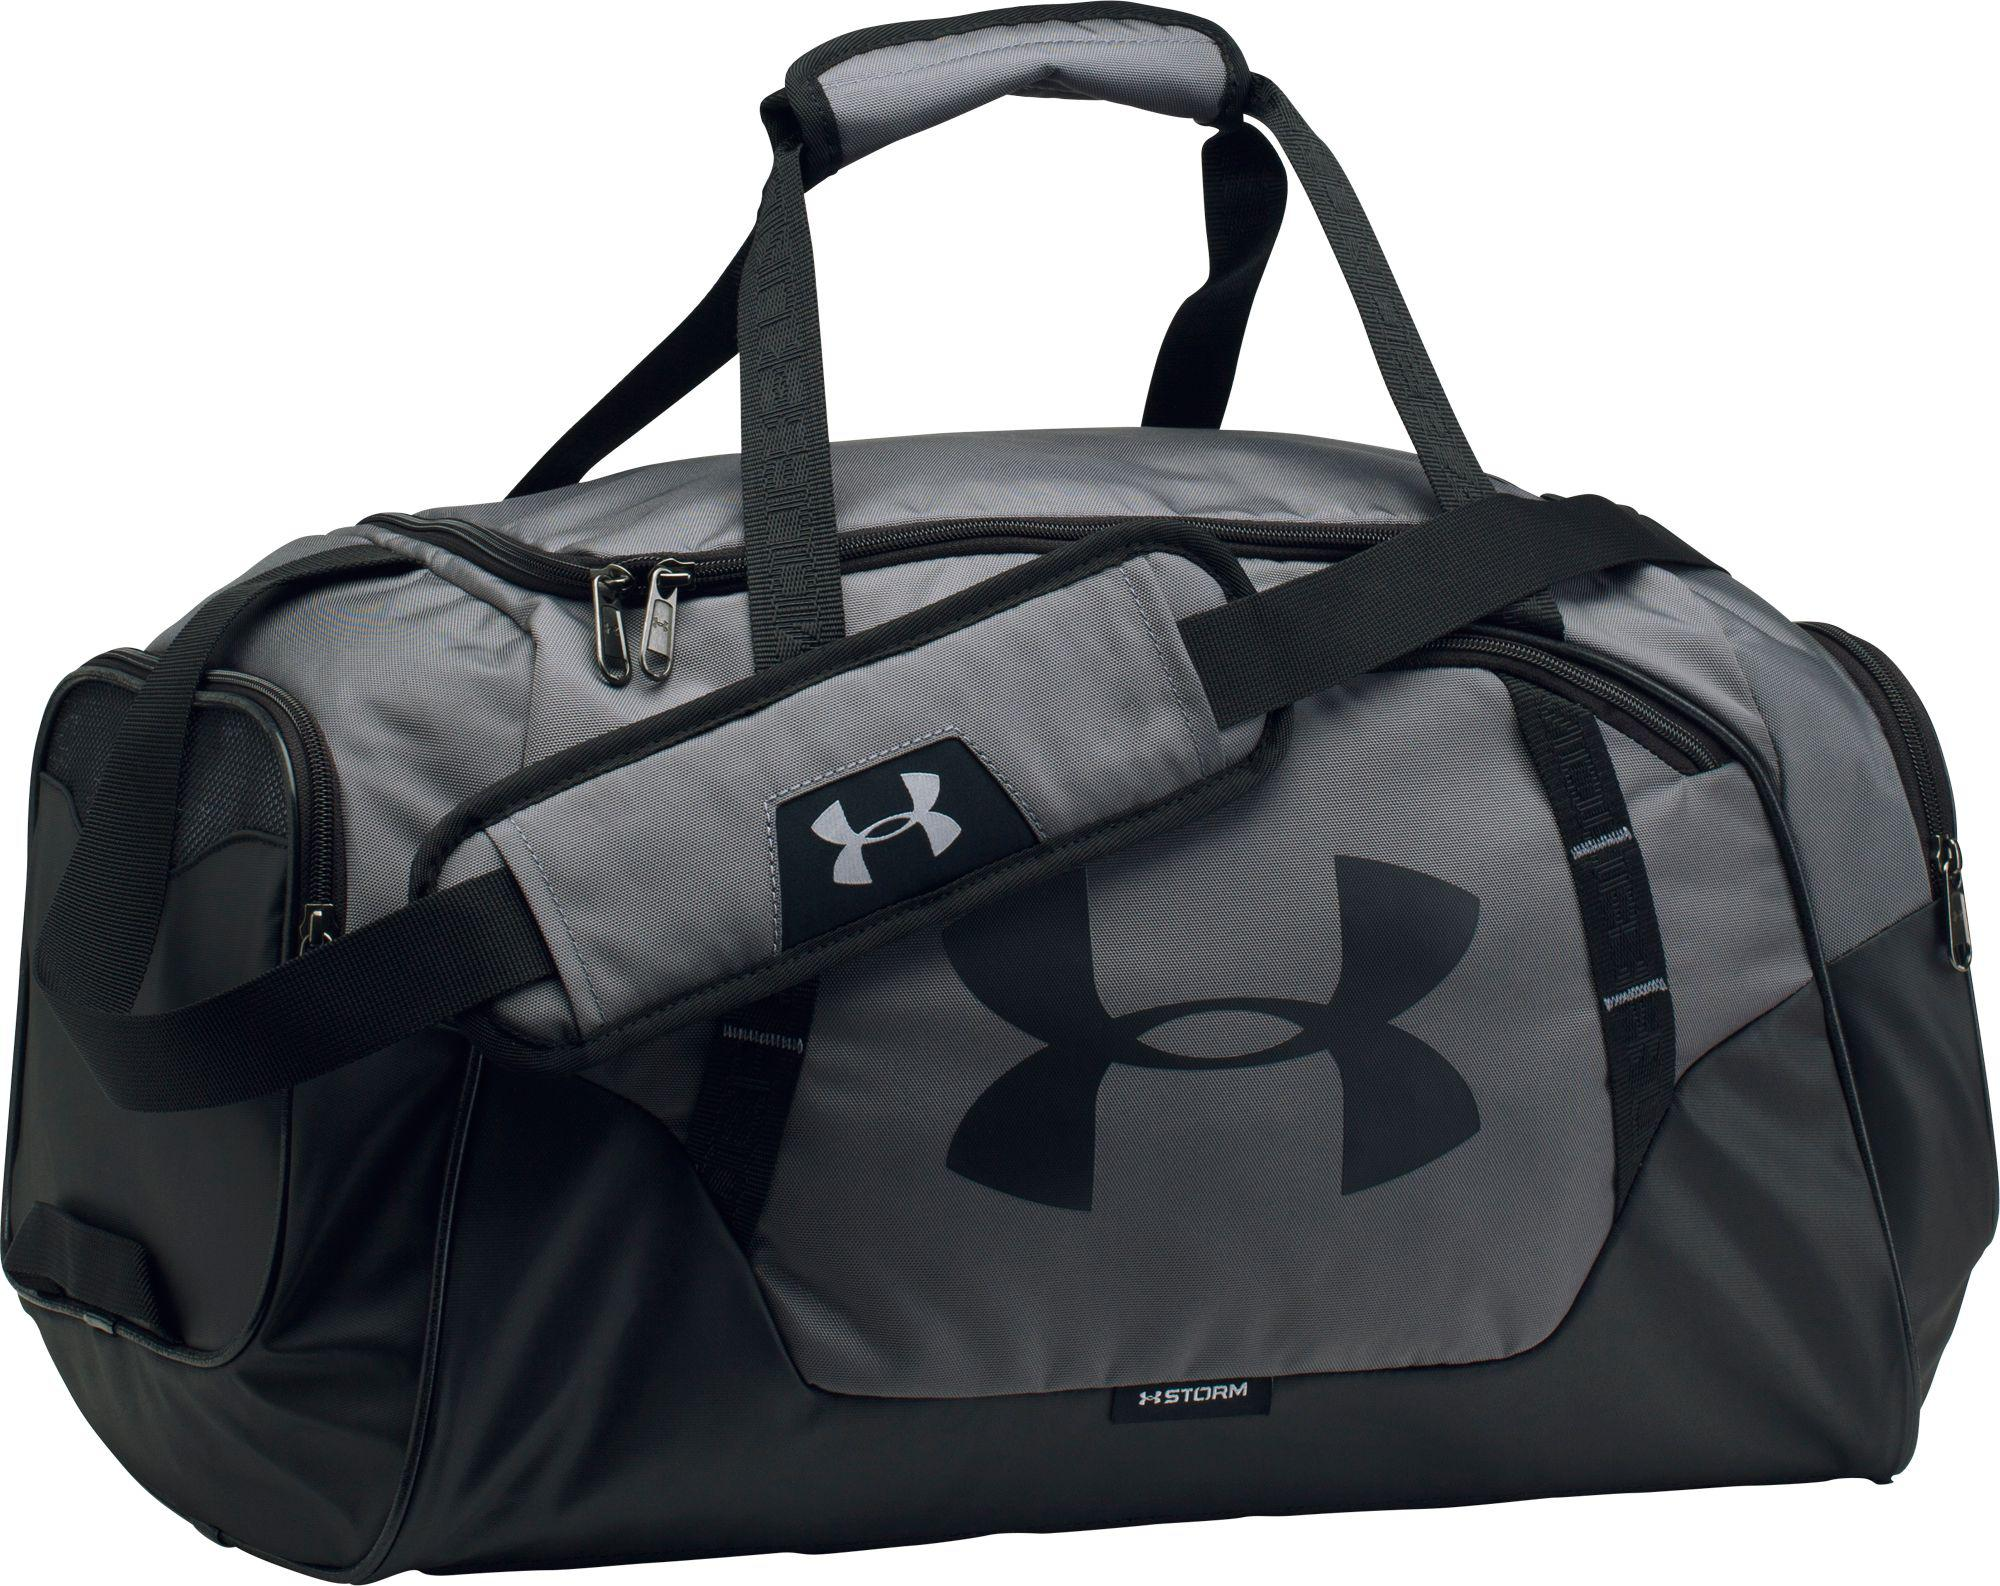 Lyst - Under Armour Undeniable 3.0 Small Duffle Bag in Black for Men ... b8afa7bed8f06